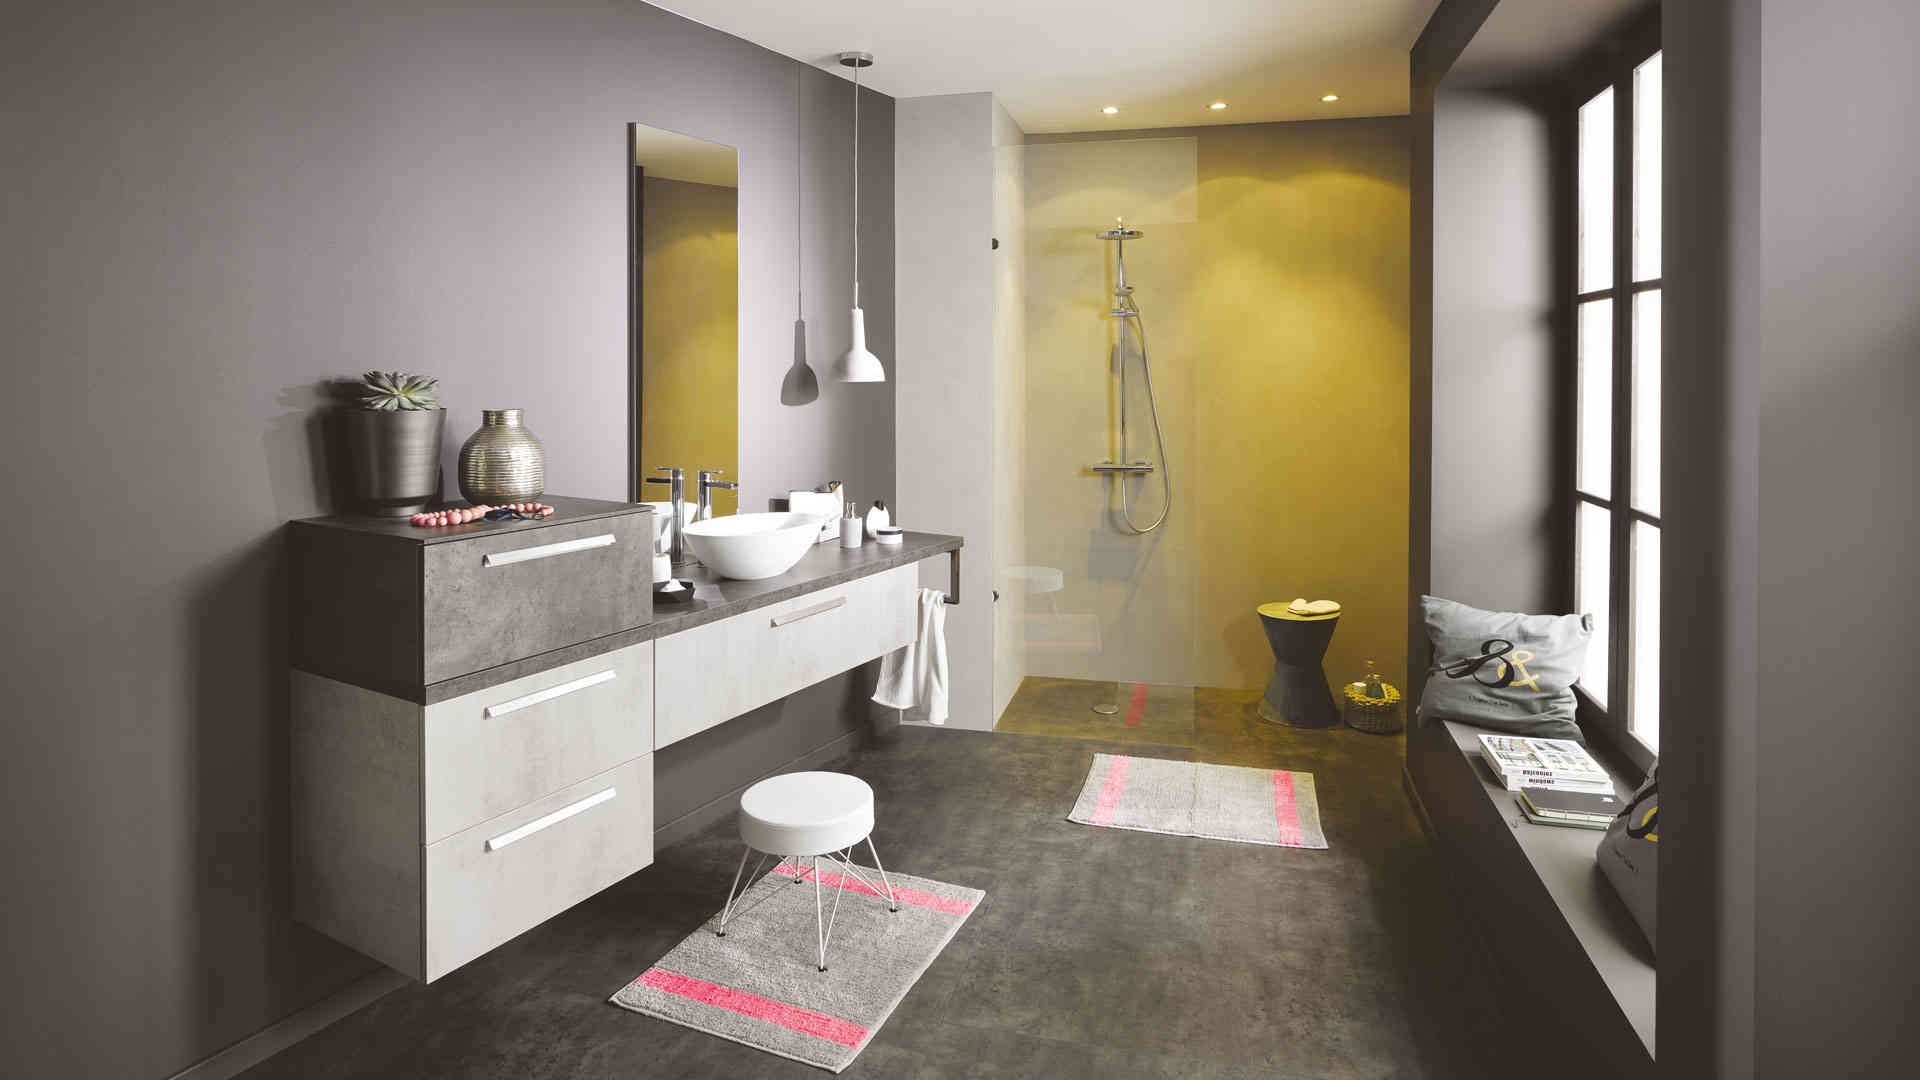 comment pr parer la r novation de sa salle de bain le blog. Black Bedroom Furniture Sets. Home Design Ideas